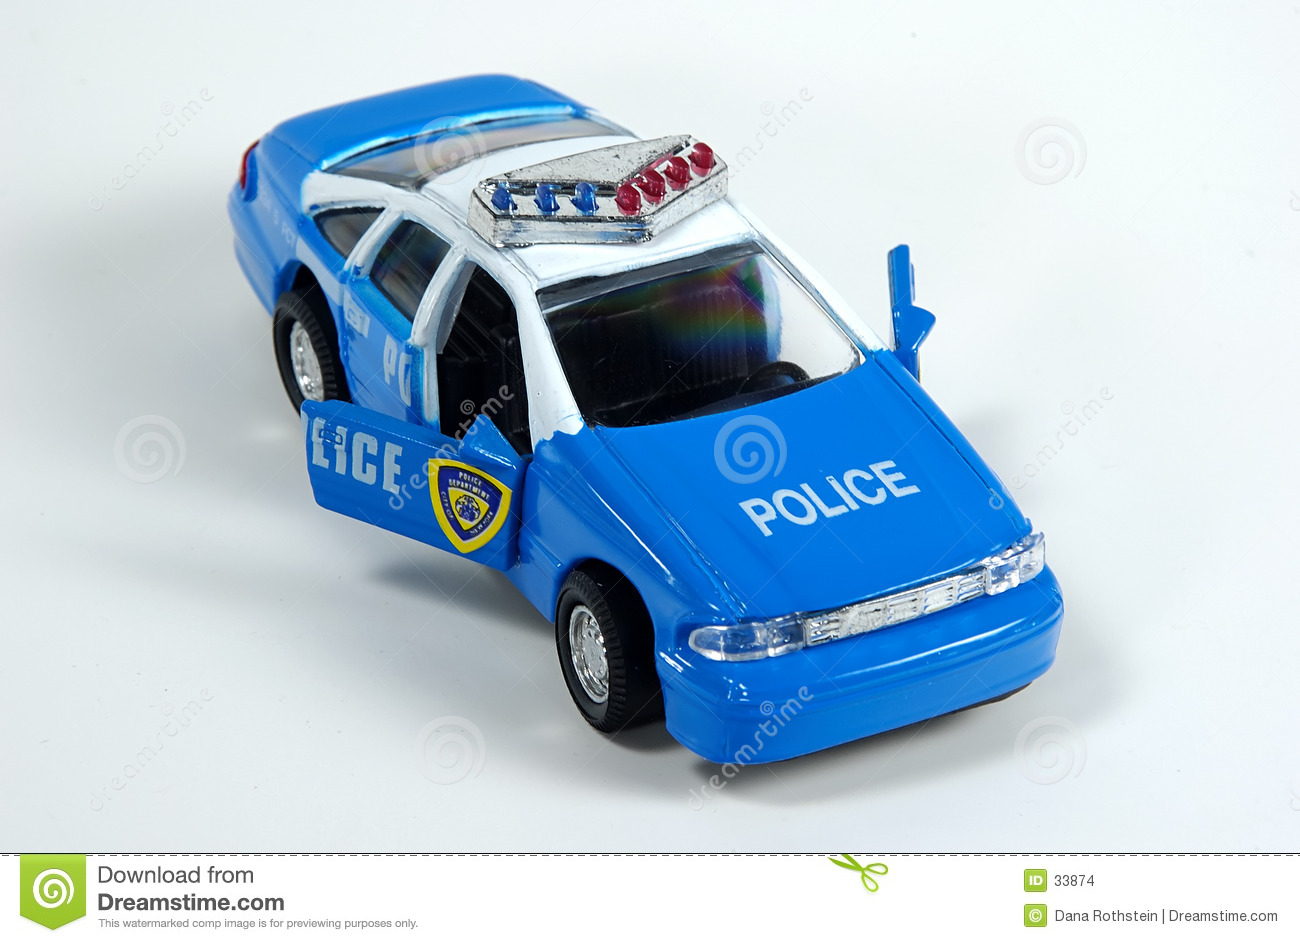 Toy Police Cars : Police toys imgkid the image kid has it